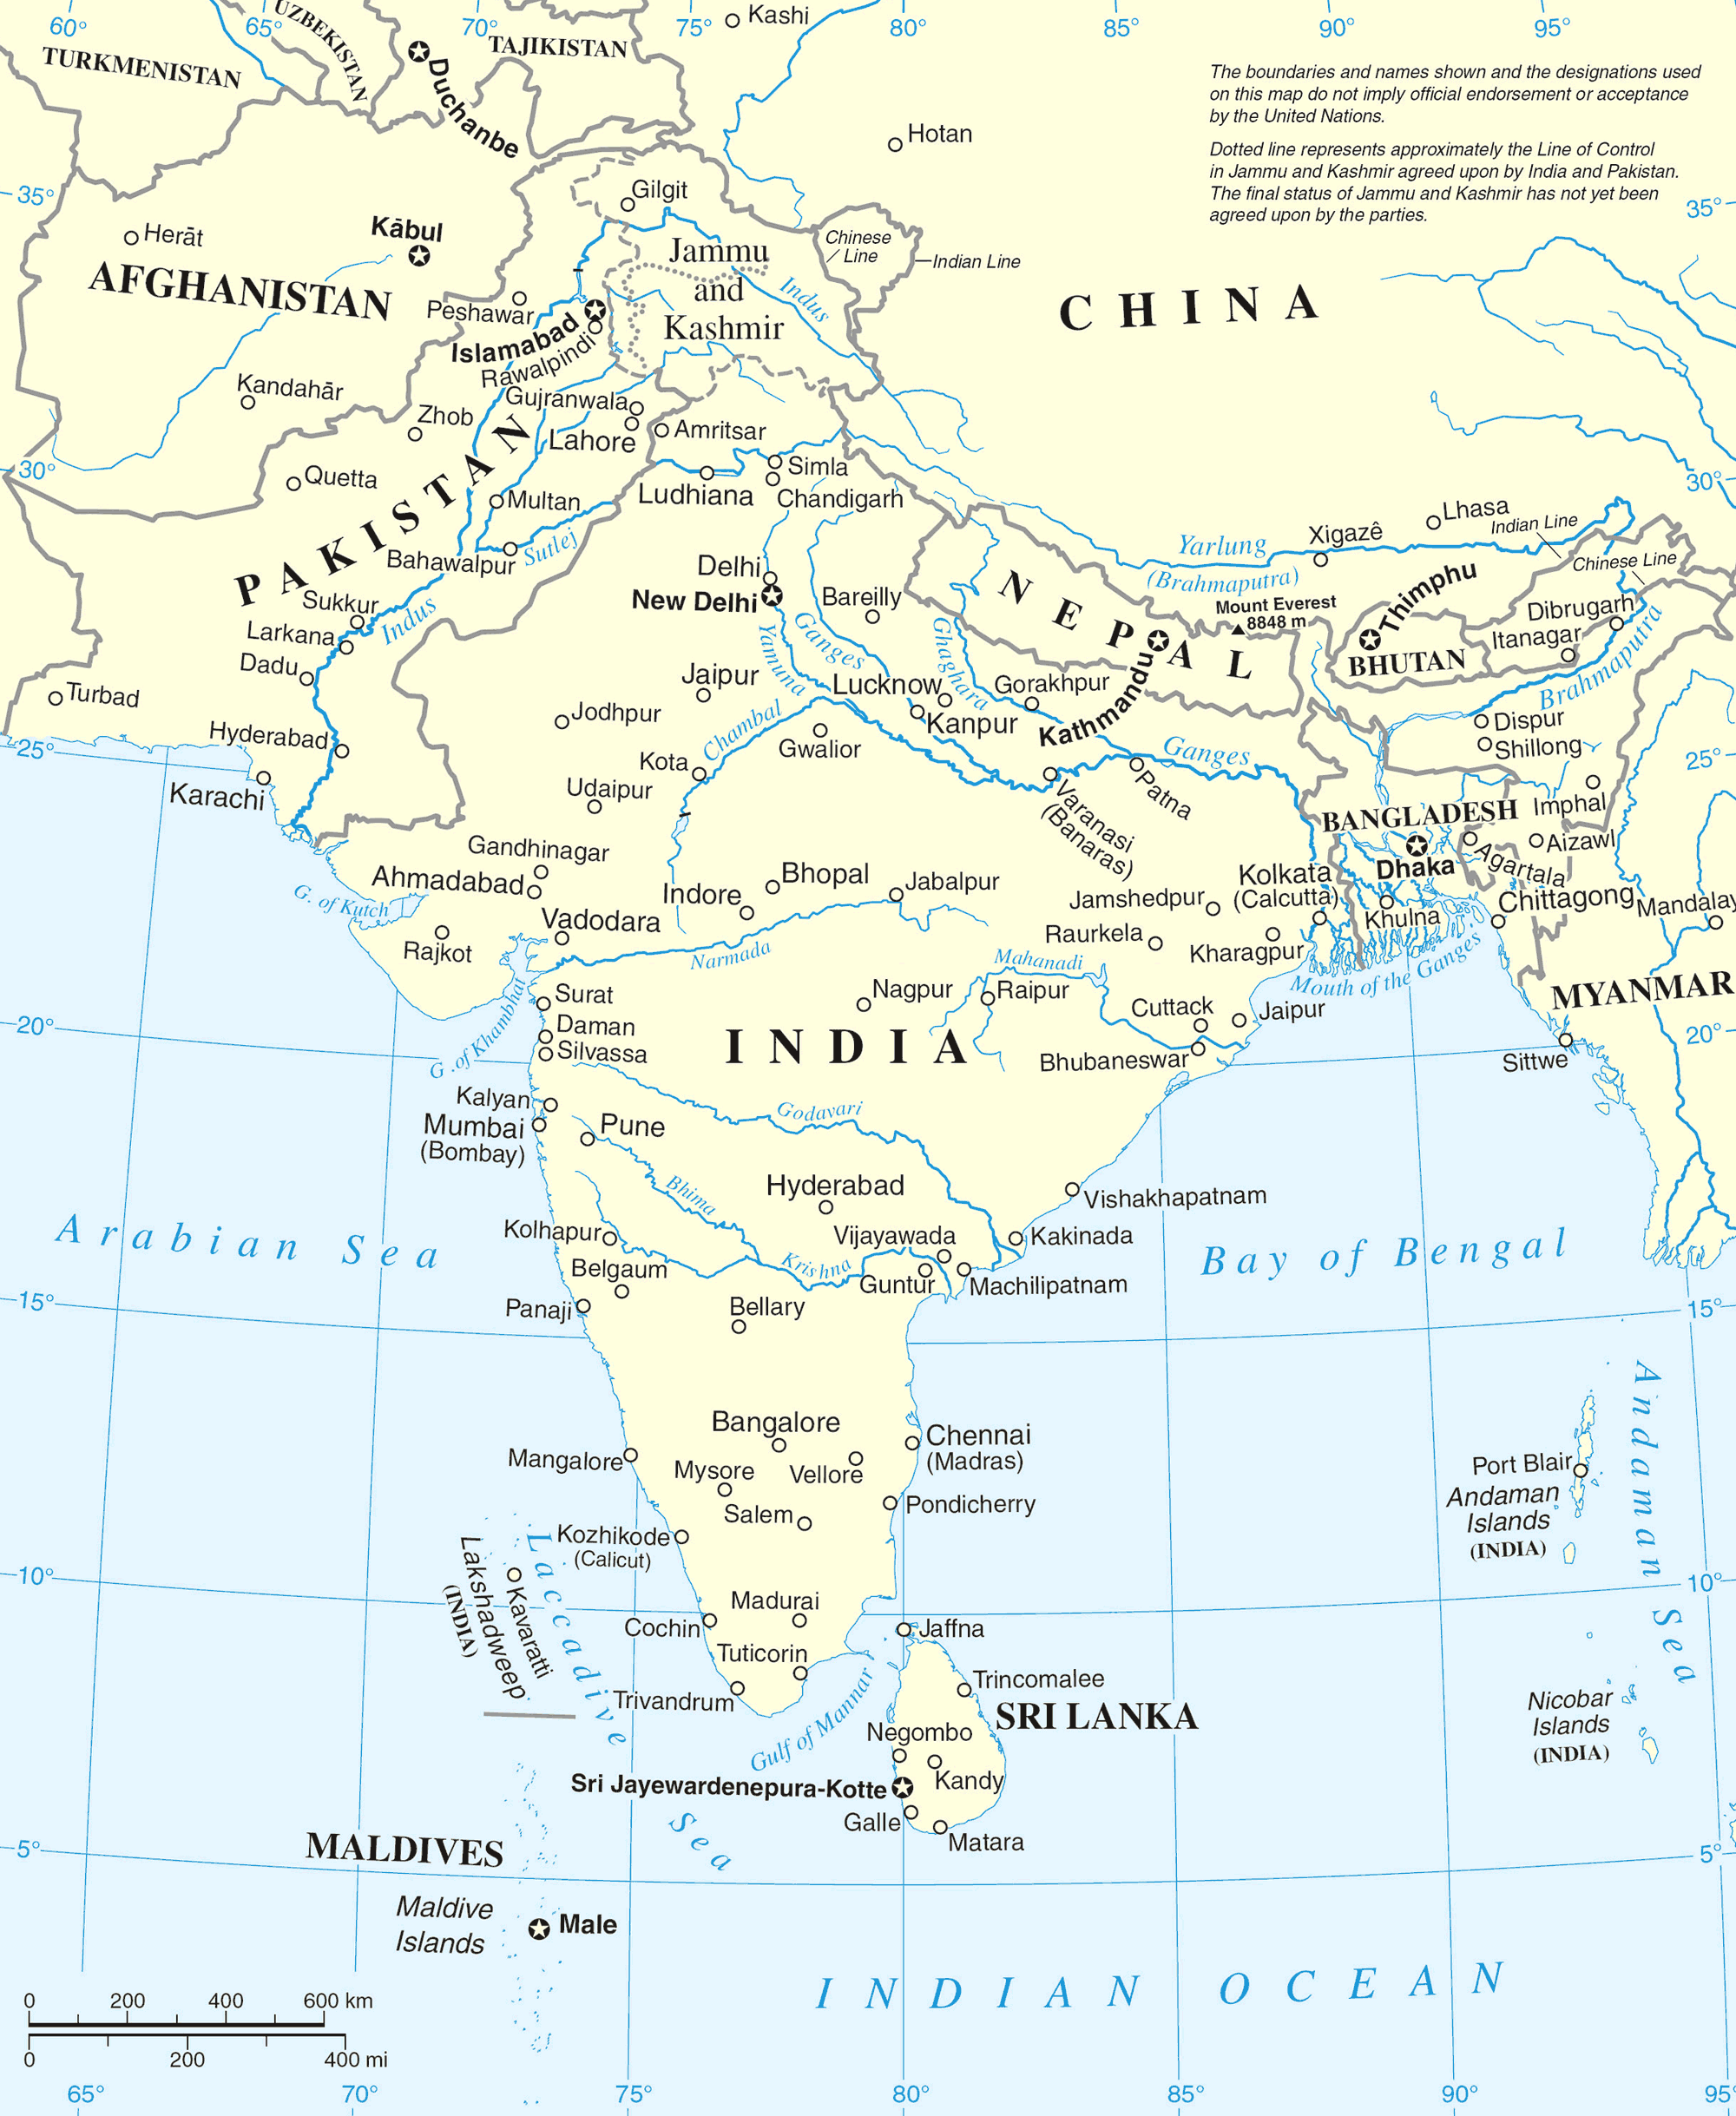 South Asia Map Drawing - Best Map Collection